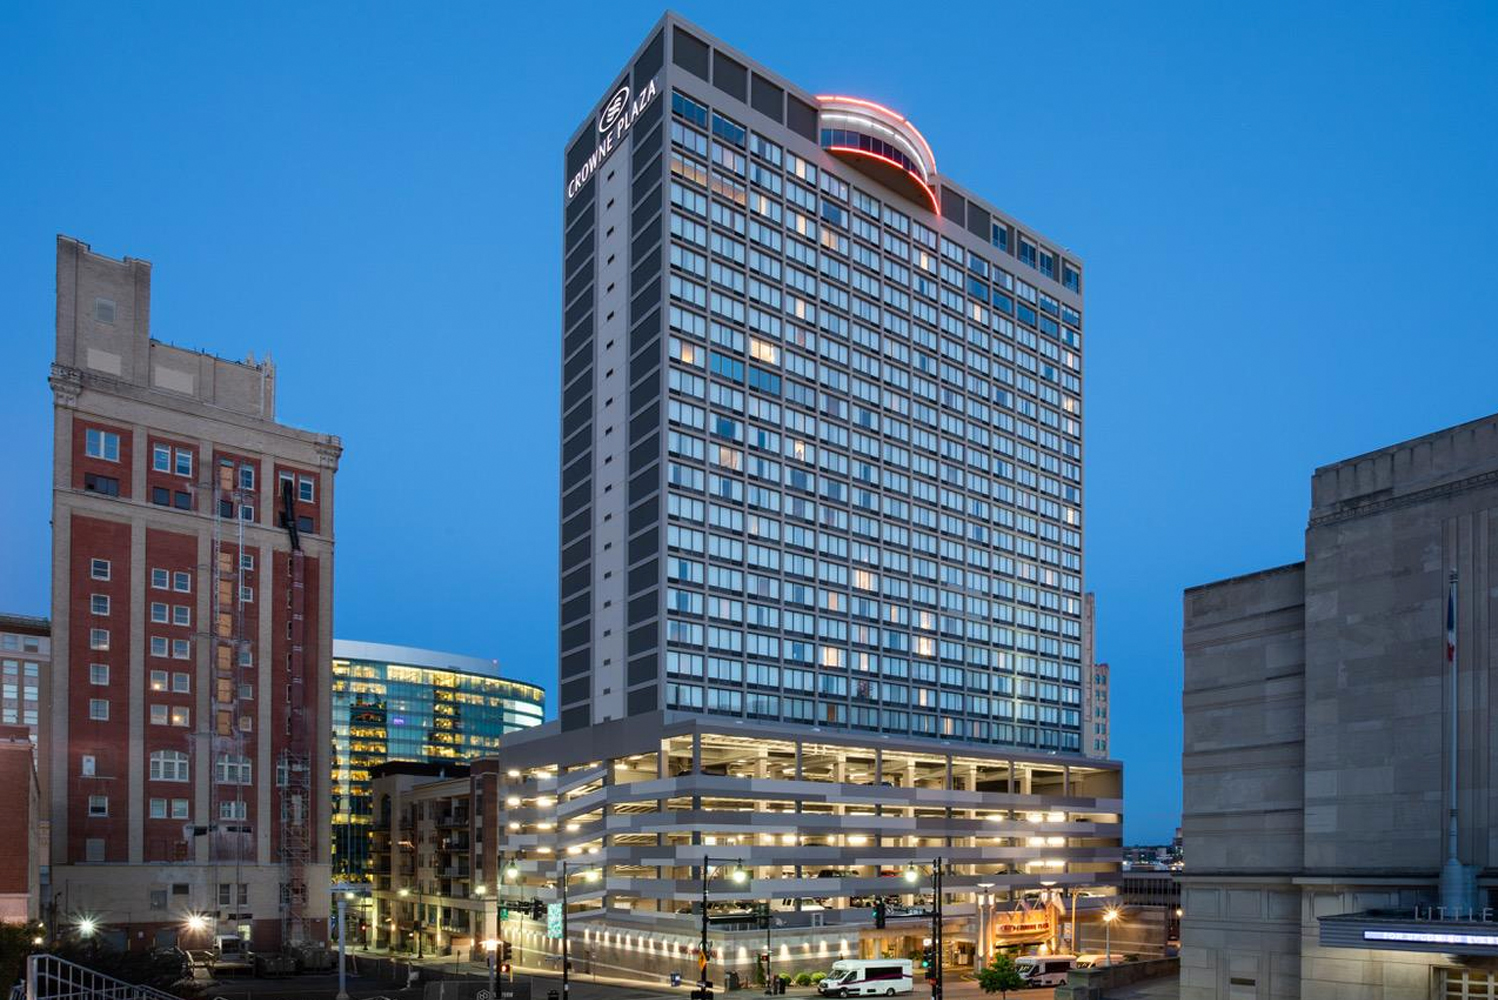 The Hotel Group (THG) completed the renovation Crowne Plaza Kansas City Downtown, with the newly redesigned public spaces and guestrooms now featuring the WorkLife model.